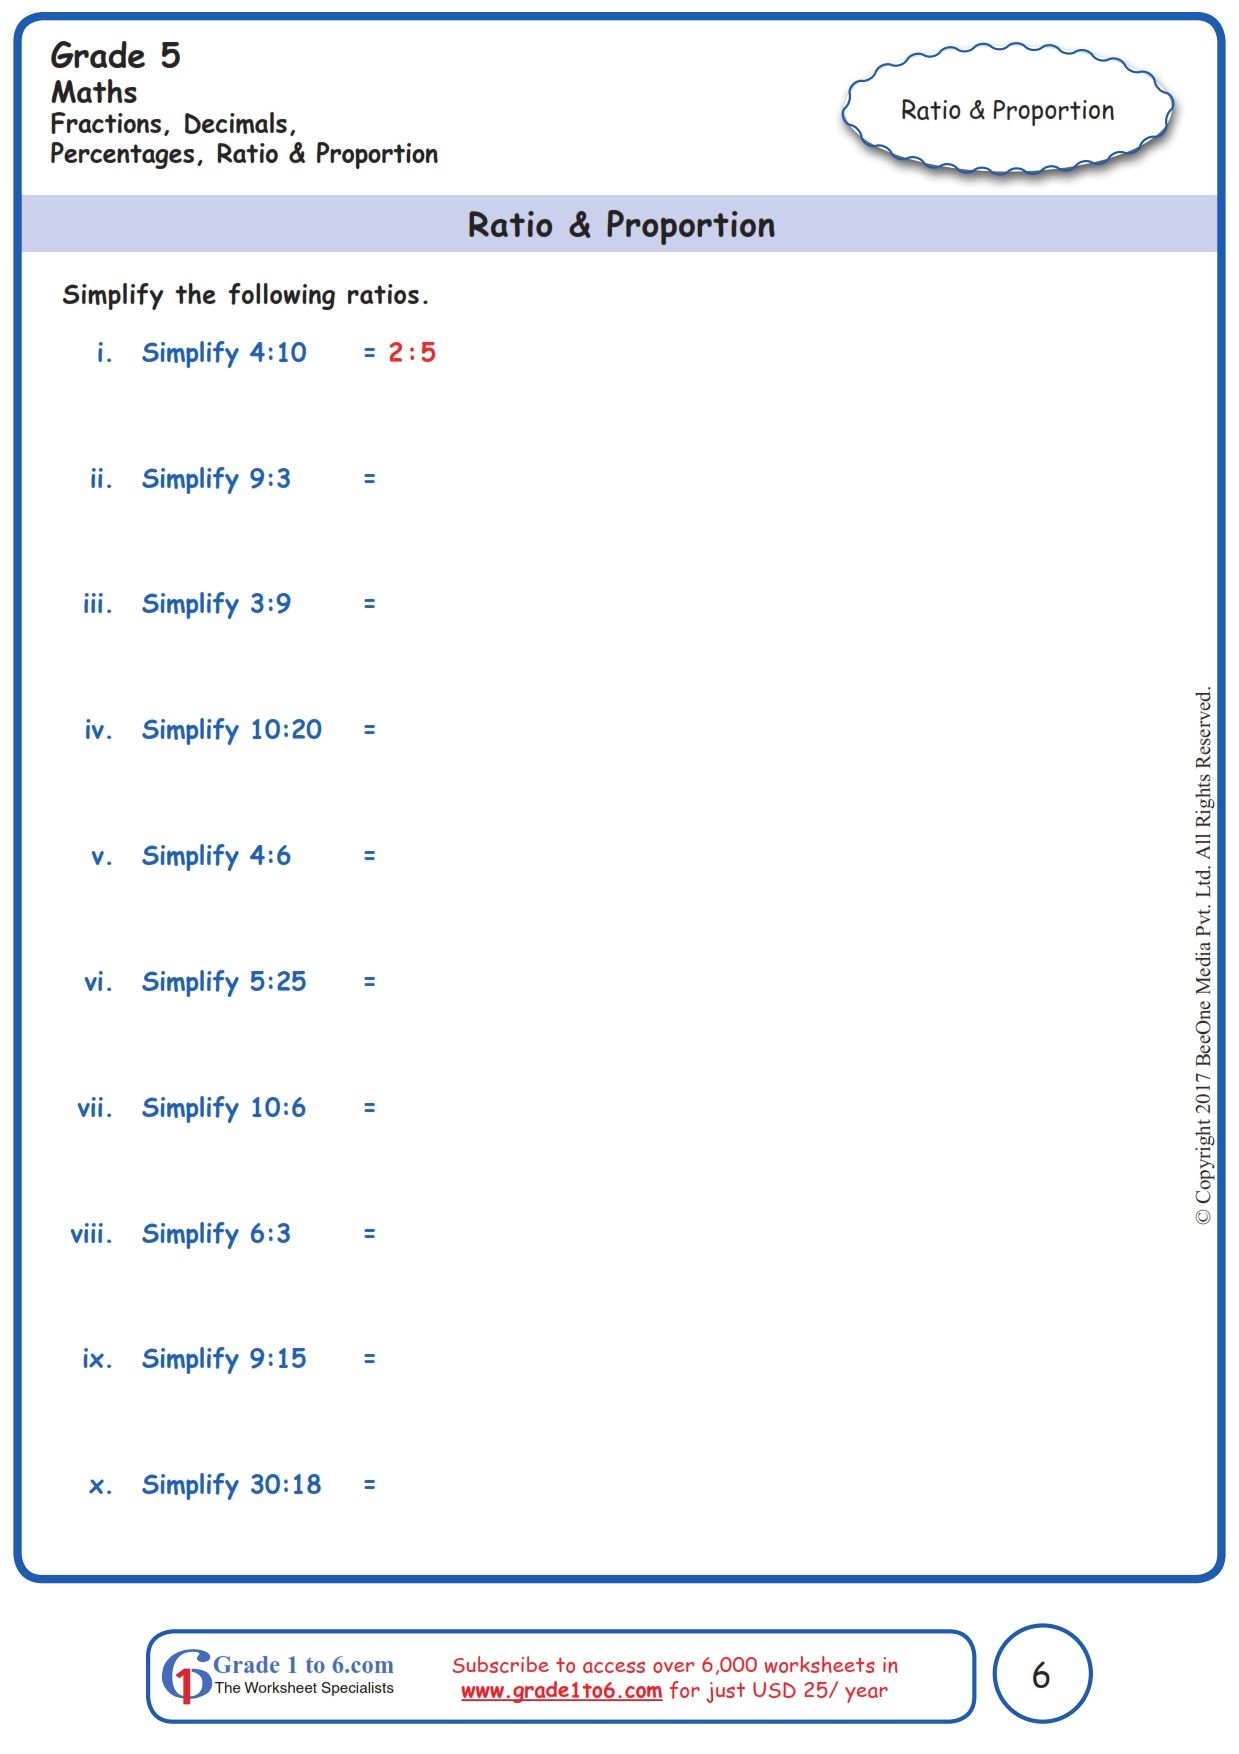 Worksheet Grade 5 Math Ratio & Proportion in 2020 Free